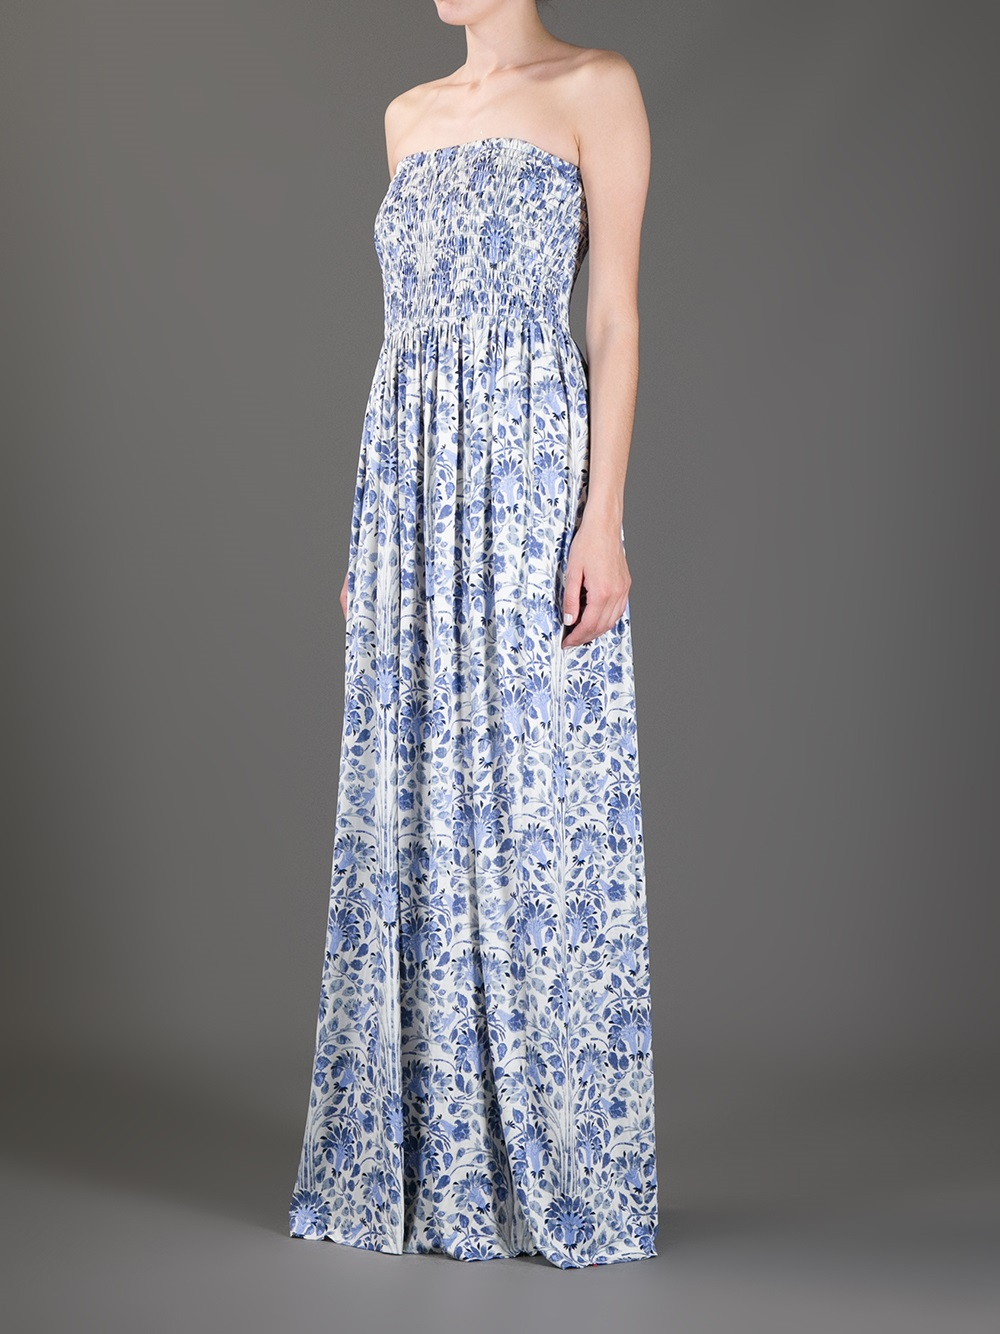 Lyst Tory Burch Floral Silk Maxi Dress